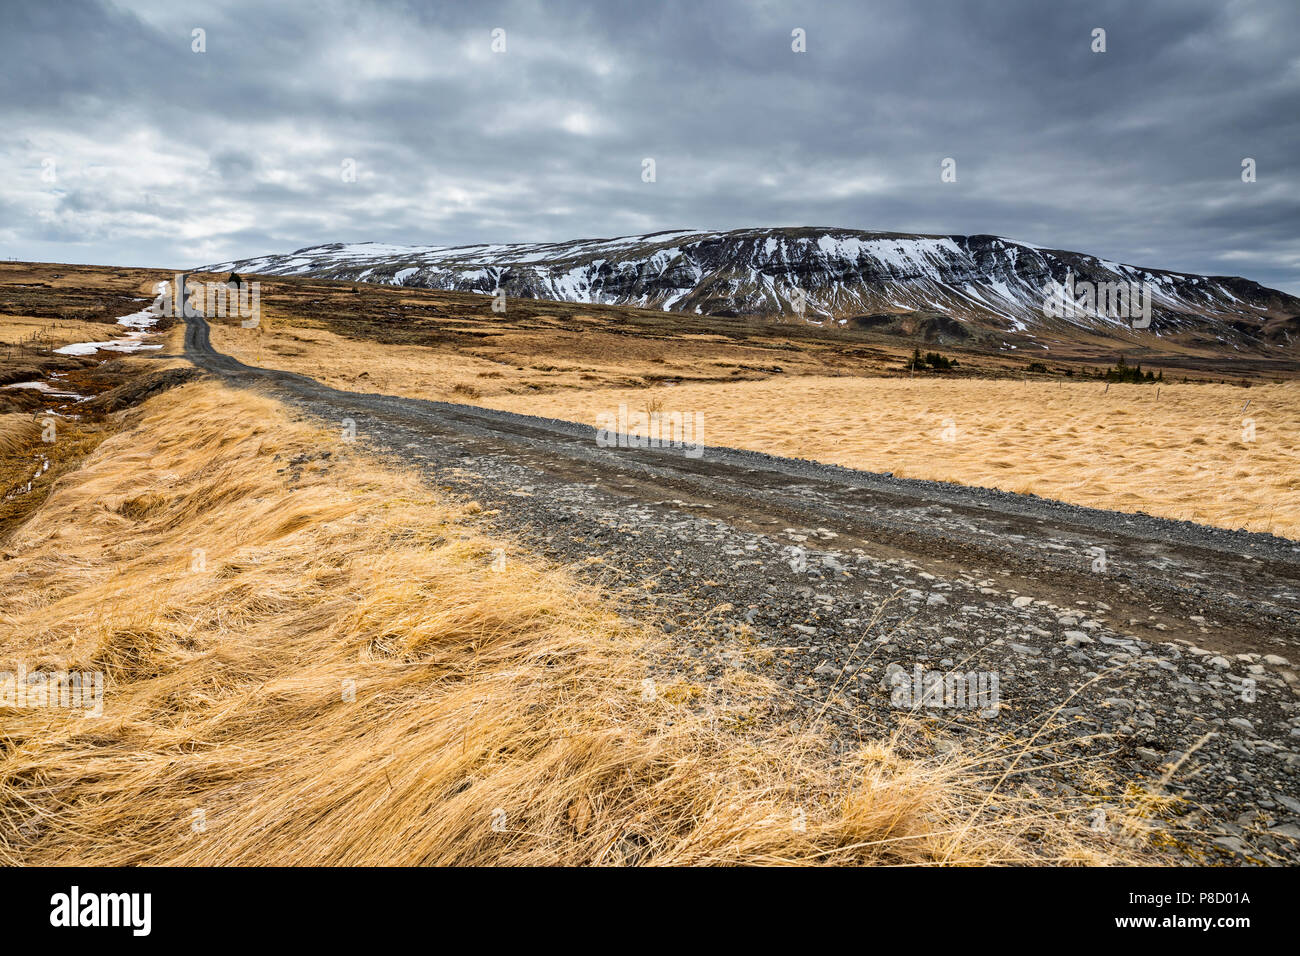 Gravel road in Iceland, near Golden circle, nature landscape - Stock Image